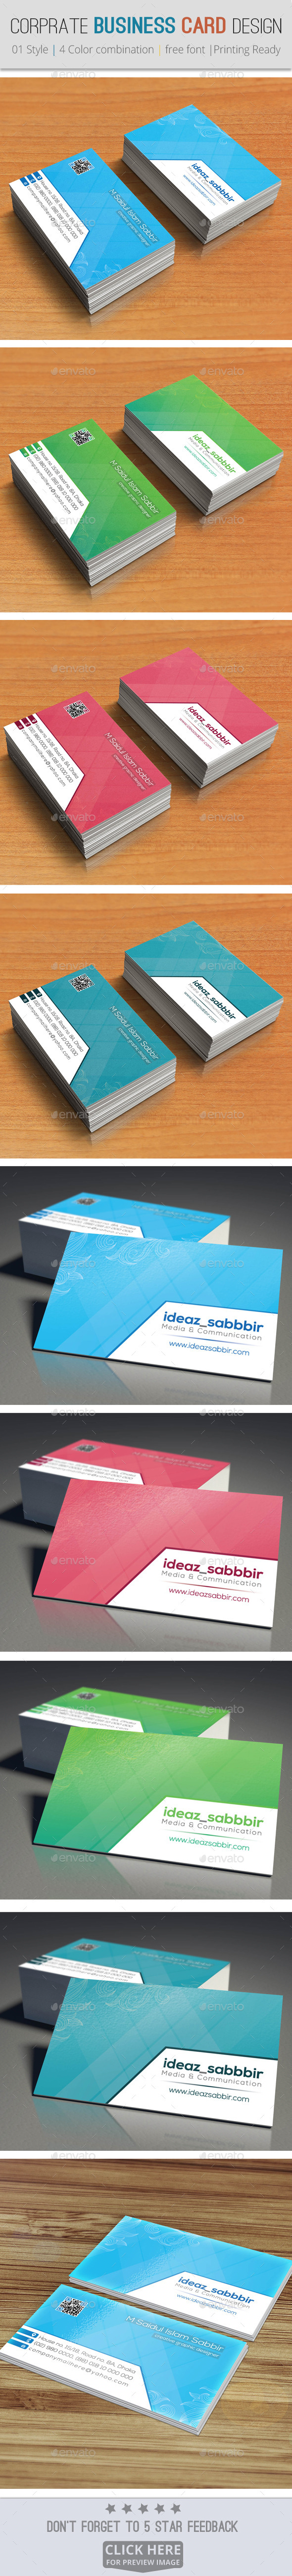 GraphicRiver Corporate & Professional Business Card Design V01 8980576